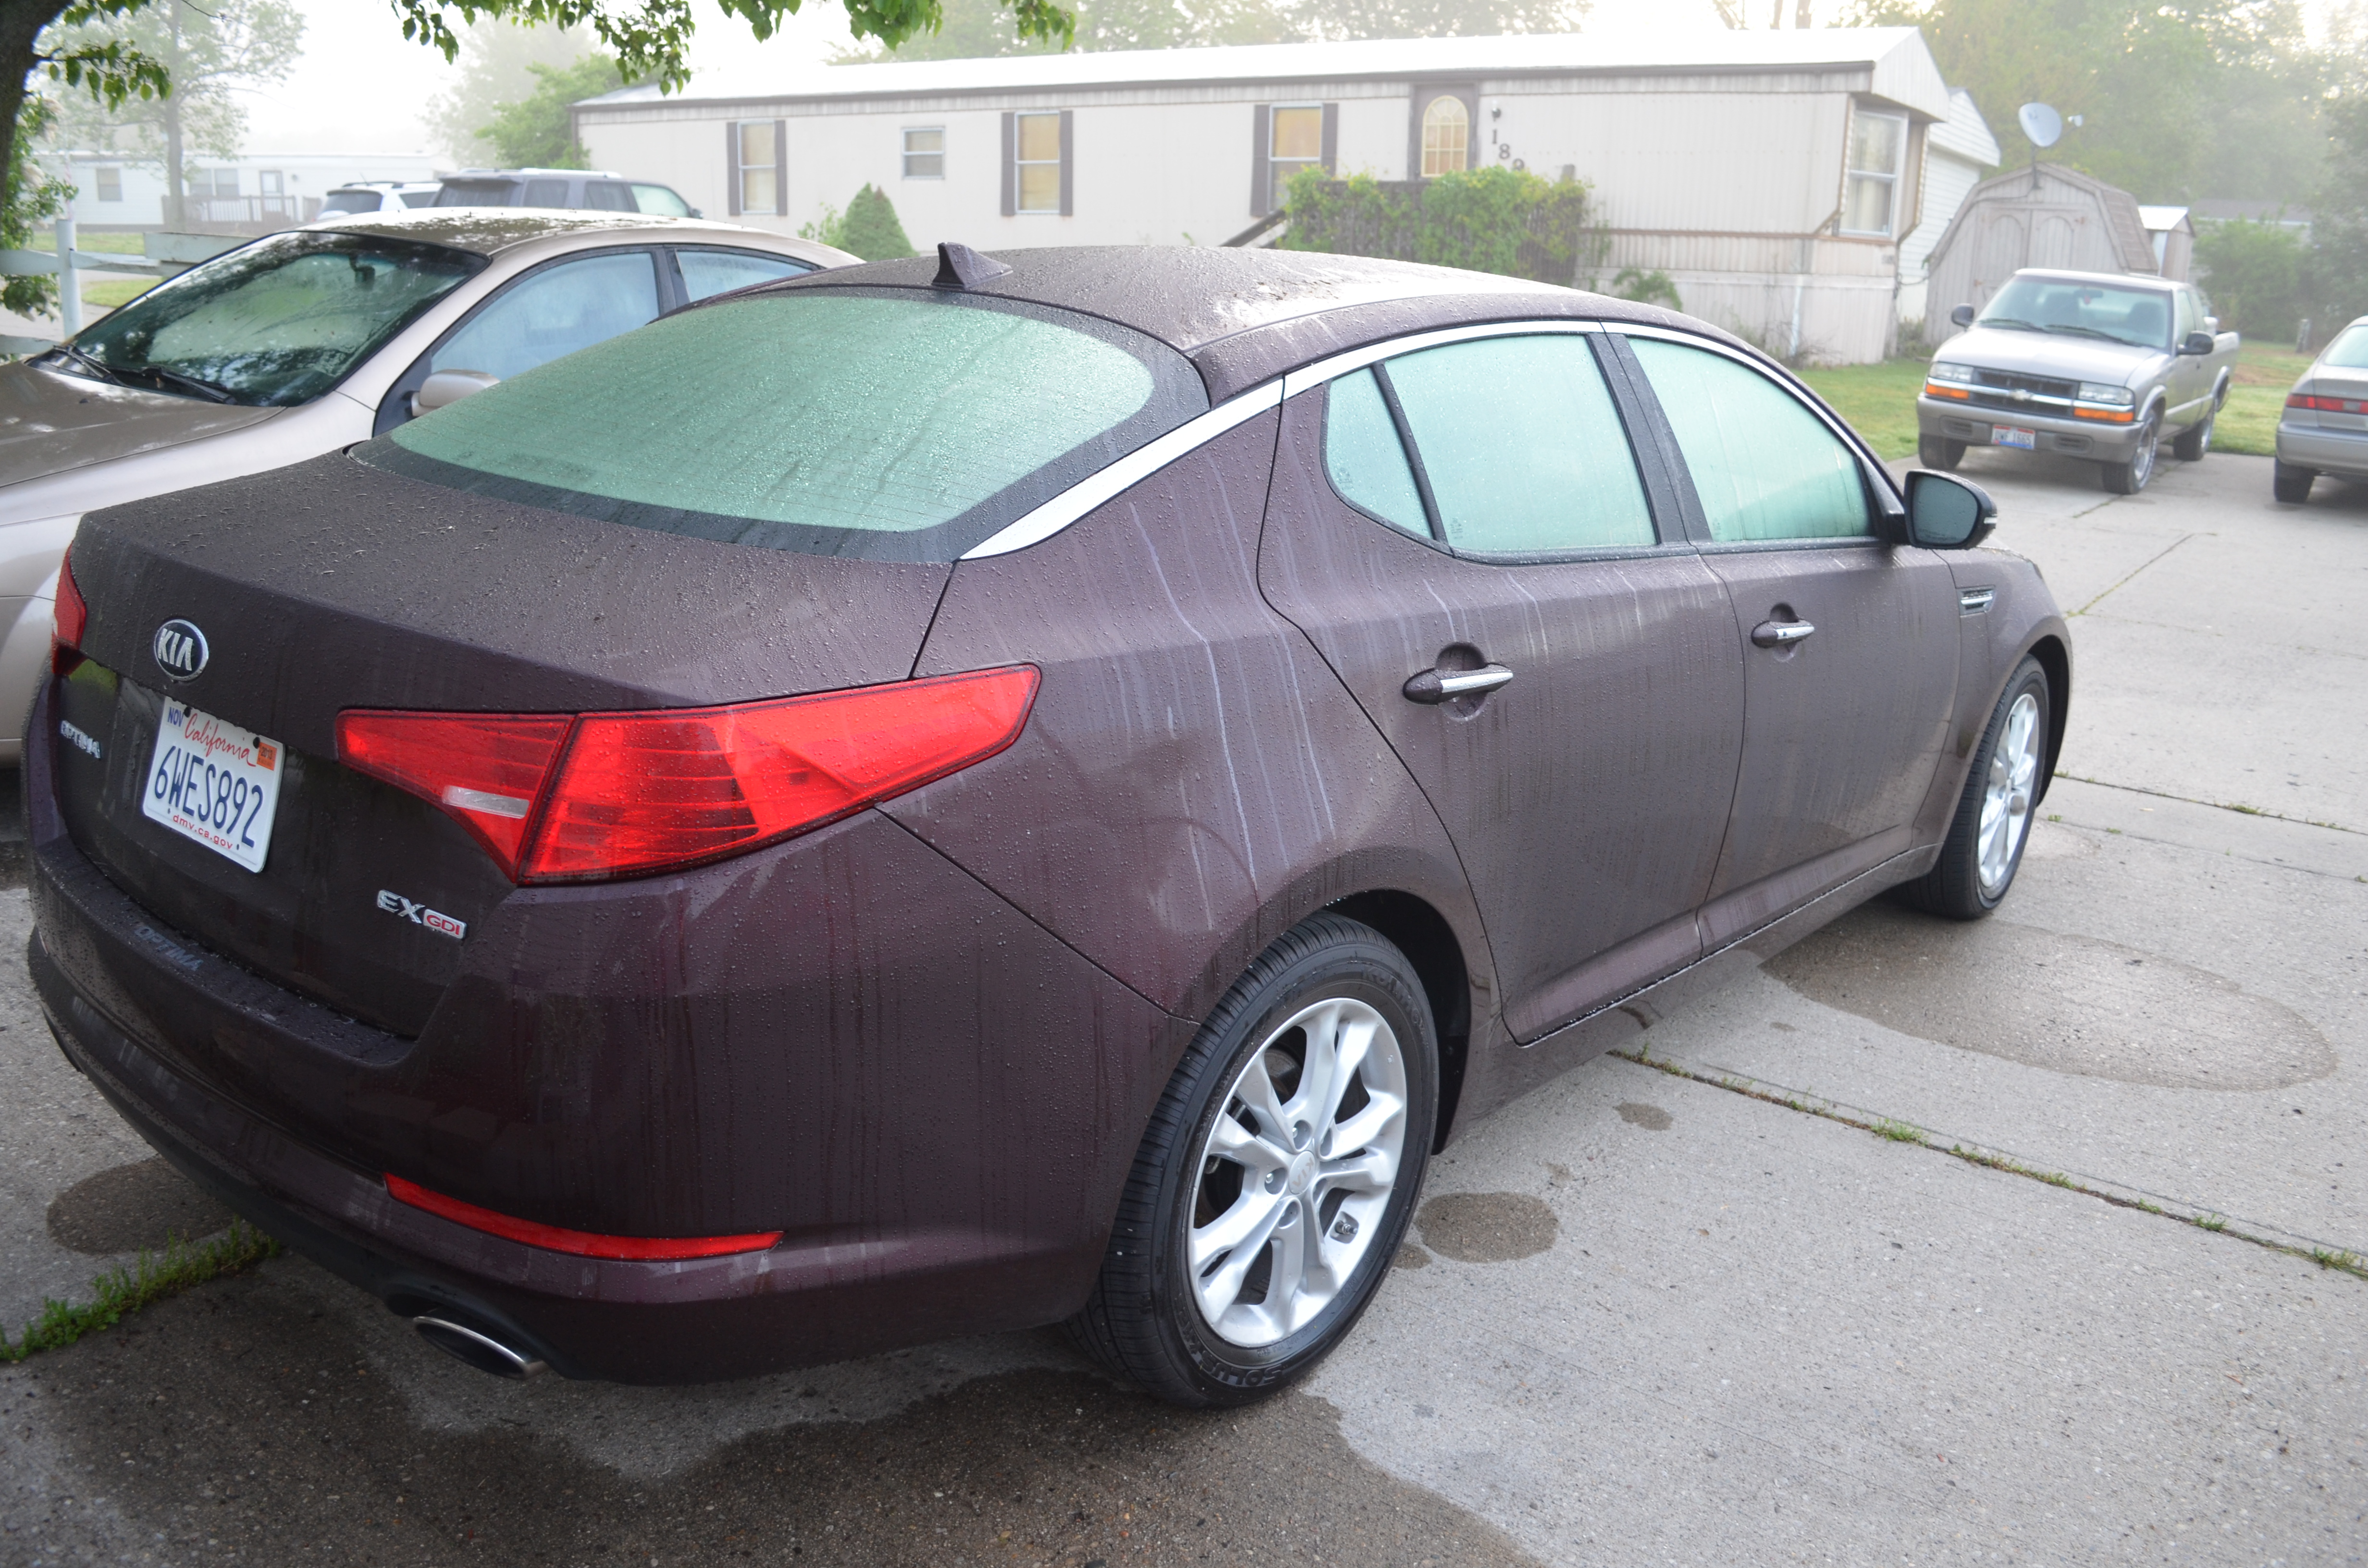 My Latest Review In The Amazing Line Of Kia Vehicles Was This Beautiful 2013  Kia Optima.